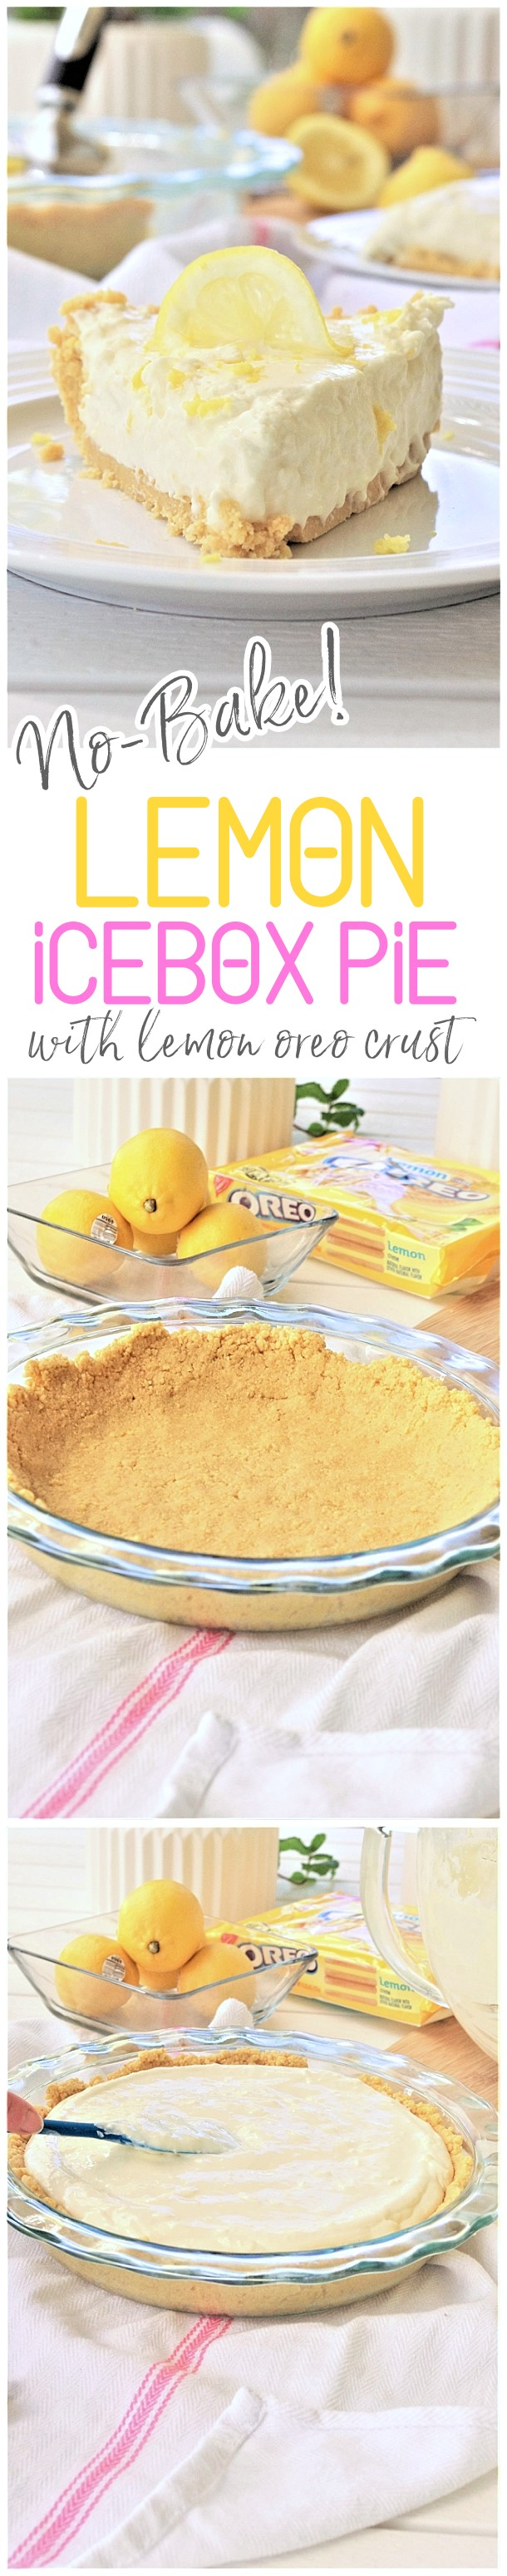 No Bake Lemon Oreo Crust Lemon Cheesecake Icebox Pie Pretty, Easy, Quick and Yummy Dessert Recipe - perfect for Mother's Day Brunch and Easter Dinners or any Spring or Summer Dinner or Holiday Party via Dreaming in DIY #lemoniceboxpie #nobakelemoncheesecake #nobakecheesecake #nobakedesserts #lemondesserts #easydesserts #easylemondesserts #easter #mothersdaydesserts #easterdesserts #springdesserts #summerdesserts #lemonpie